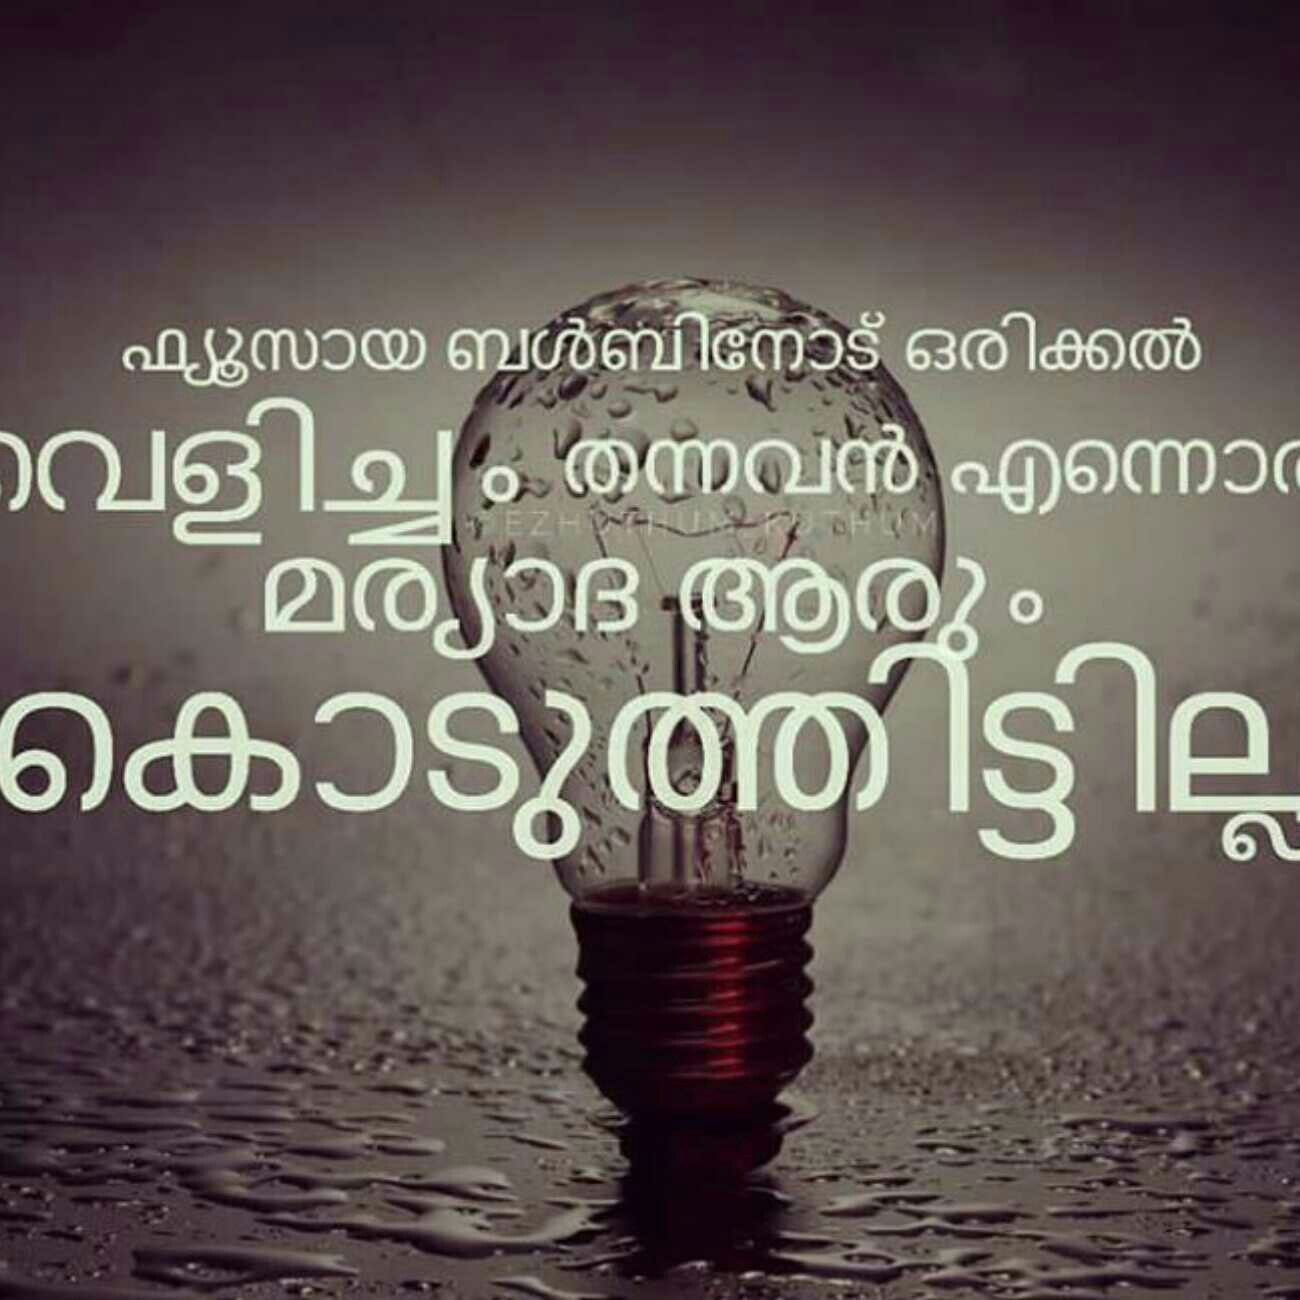 Pin By Chandran Pullekat On Well Said Quotes Good Morning Wishes Malayalam Quotes Good Morning Quotes